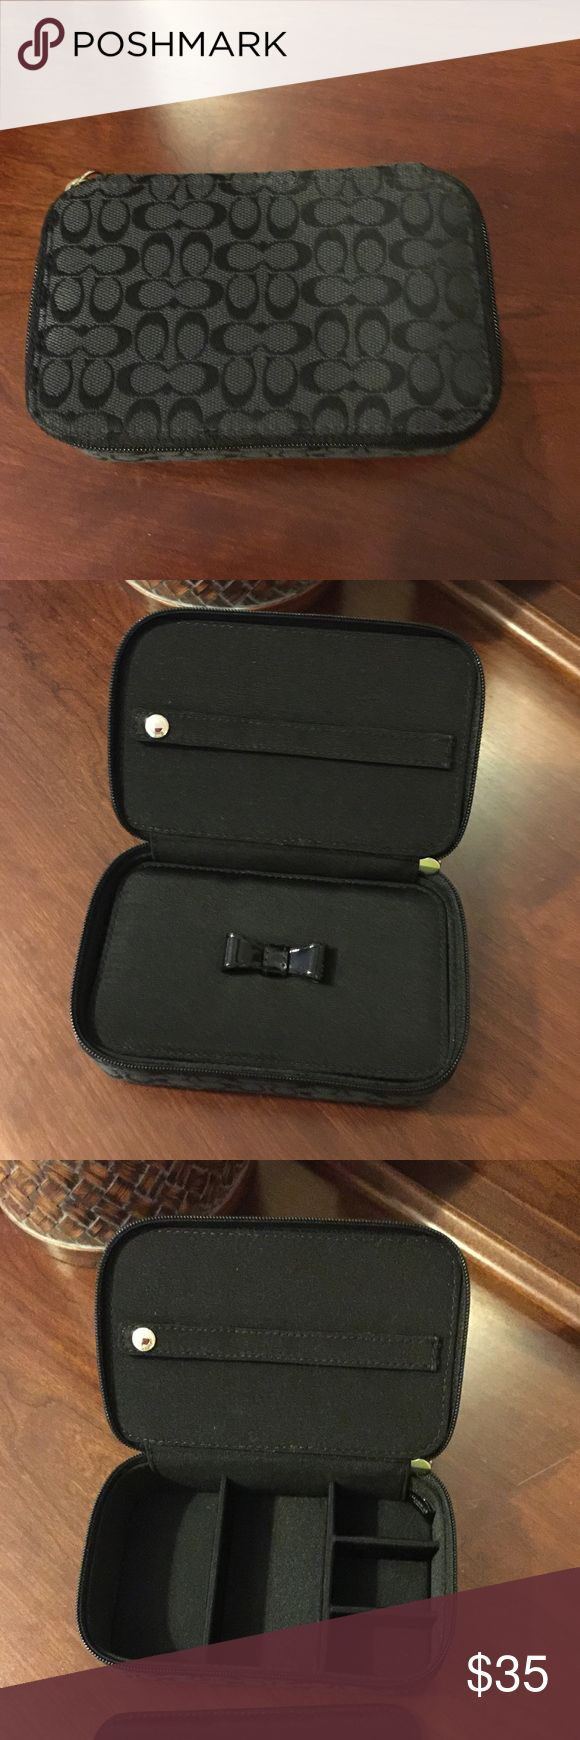 Coach jewelry box Coach jewelry box, used once in like new condition.  Great for traveling, on your dresser or in a drawer with your finer jewelry out of site. Nonsmoking *** Accessories